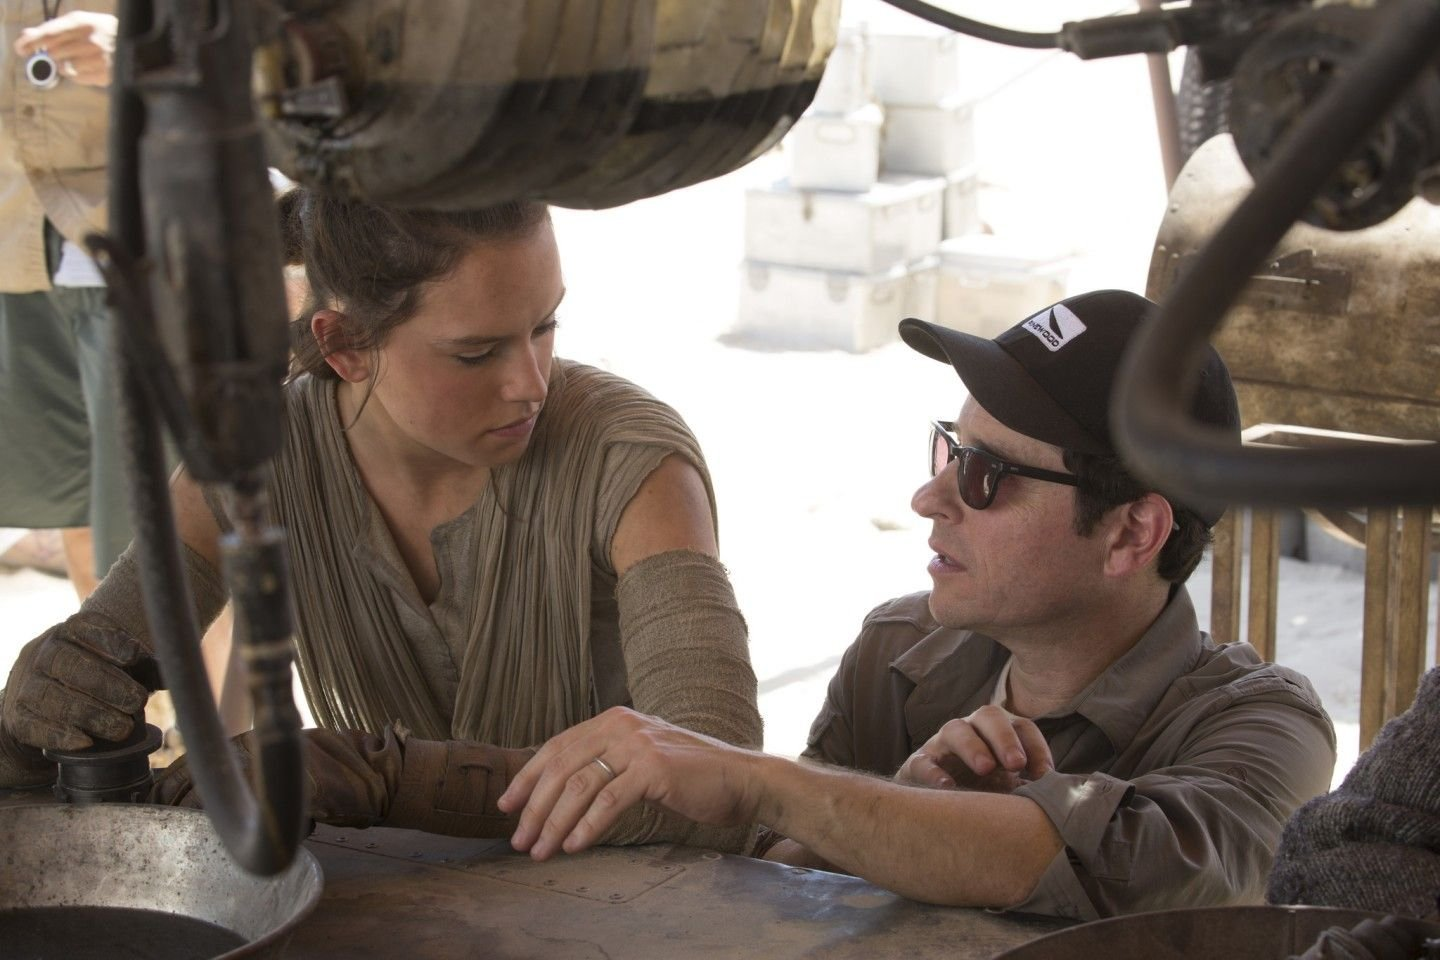 J.J. Abrams Reflects on 'Star Wars' and When It's Critical to Have a Plan